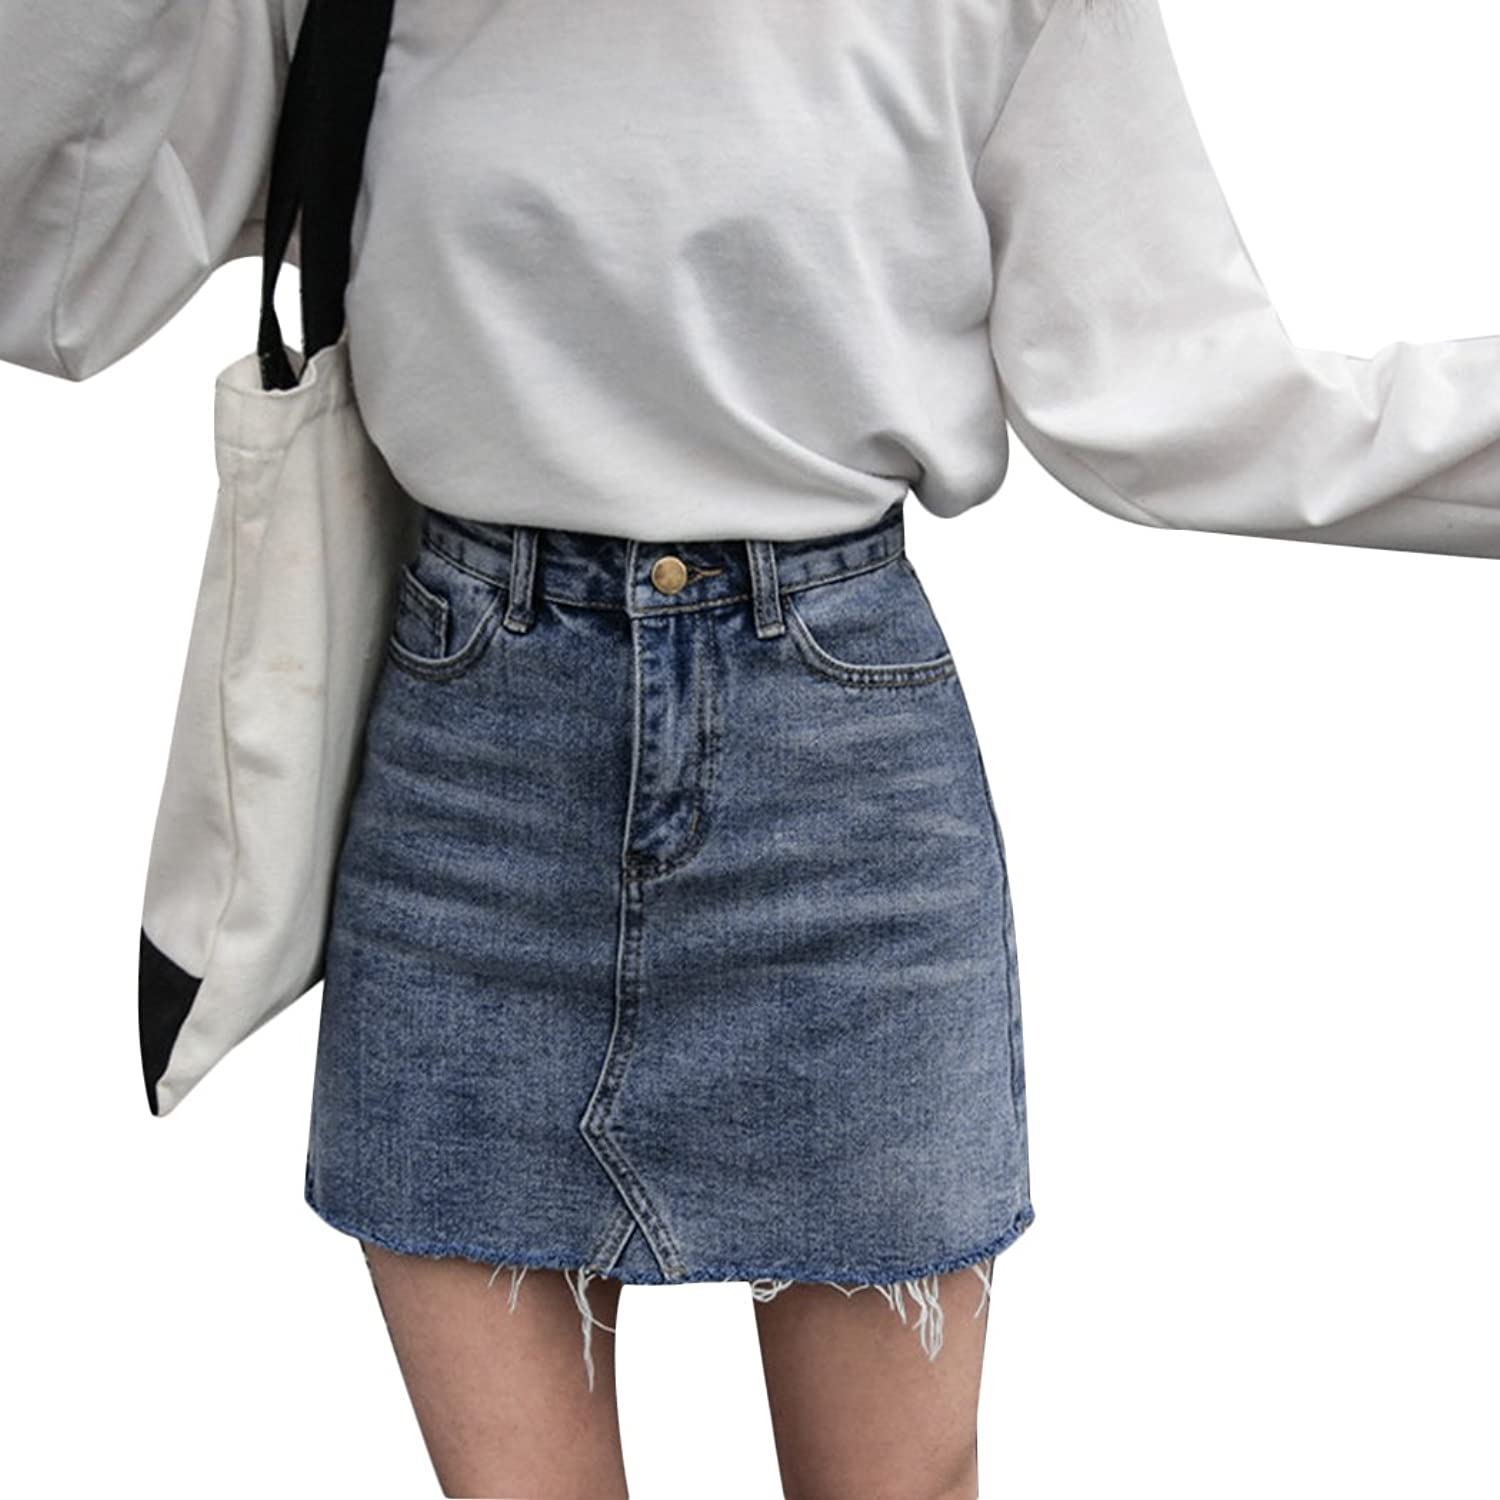 8308c43eab The Blend of Cowboy Makes for a Very Soft and Comfortable Fabric with a  Nice Stretch,Stylish Women A-line Denim Skirts Make You Full of Fashion  Charm